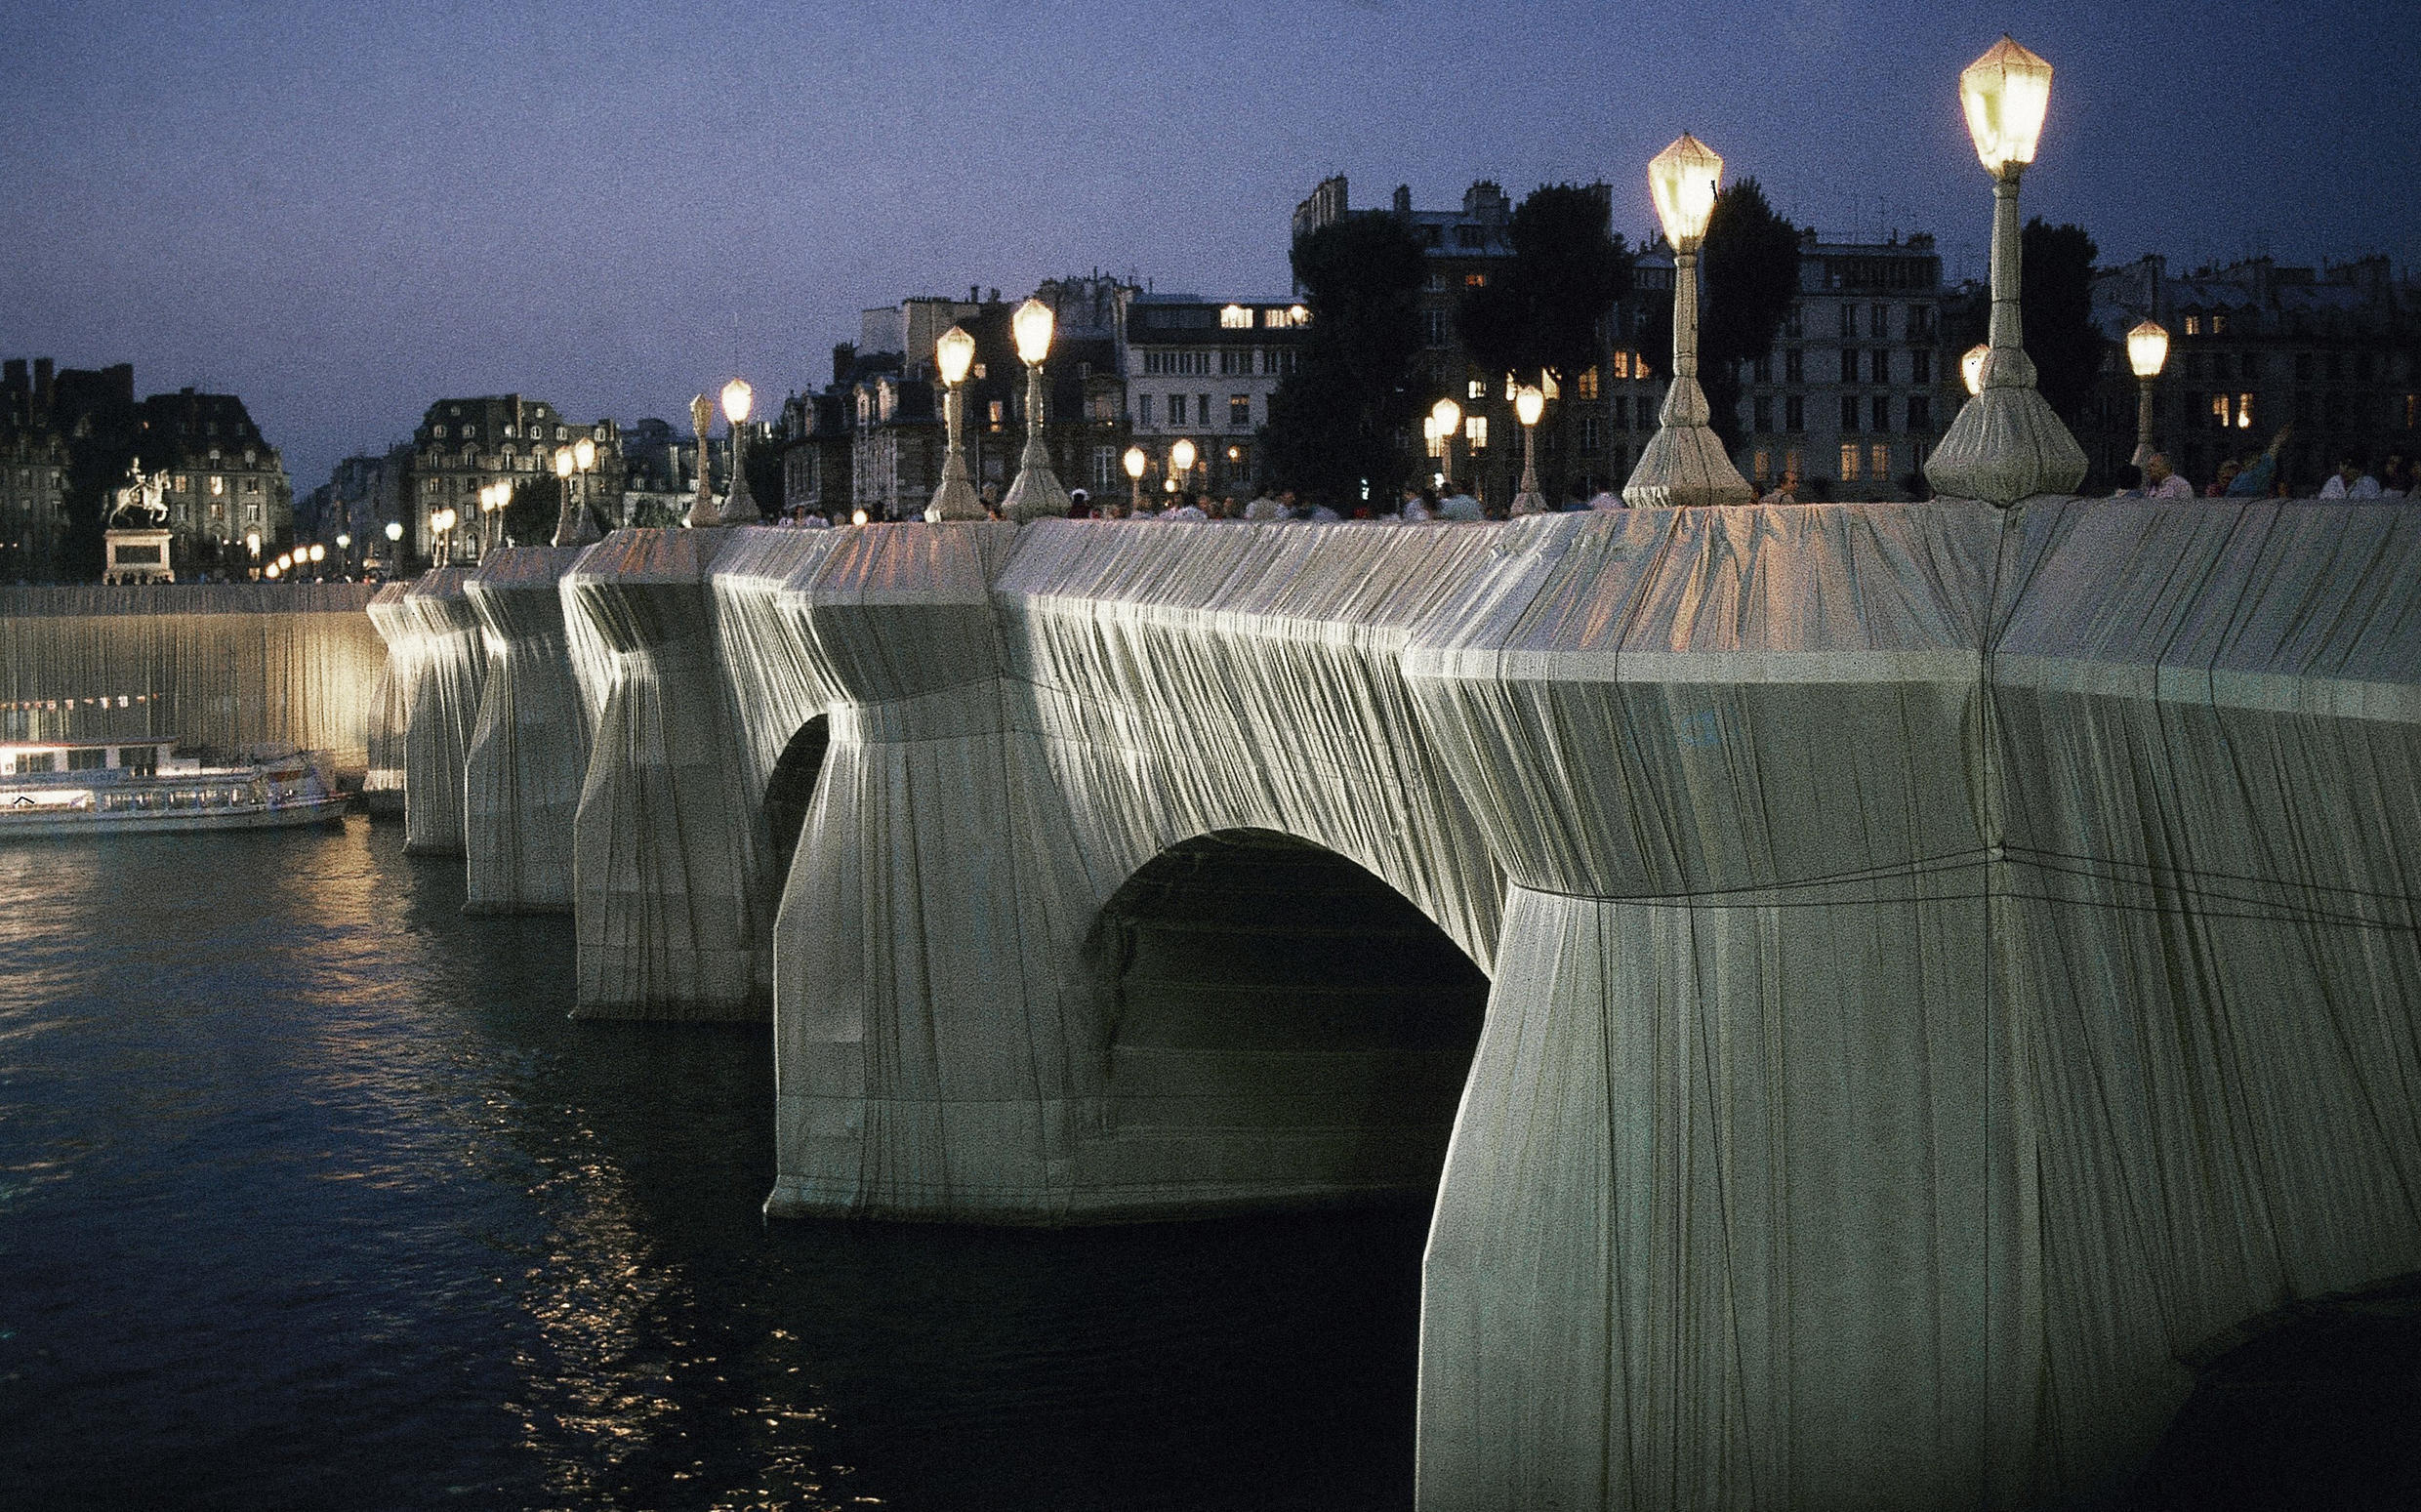 The Pont-Neuf, oldest bridge in Paris, was wrapped in 40,000 square meters of sandstone colored shiny nylon cloth by artist Christo in 1985.